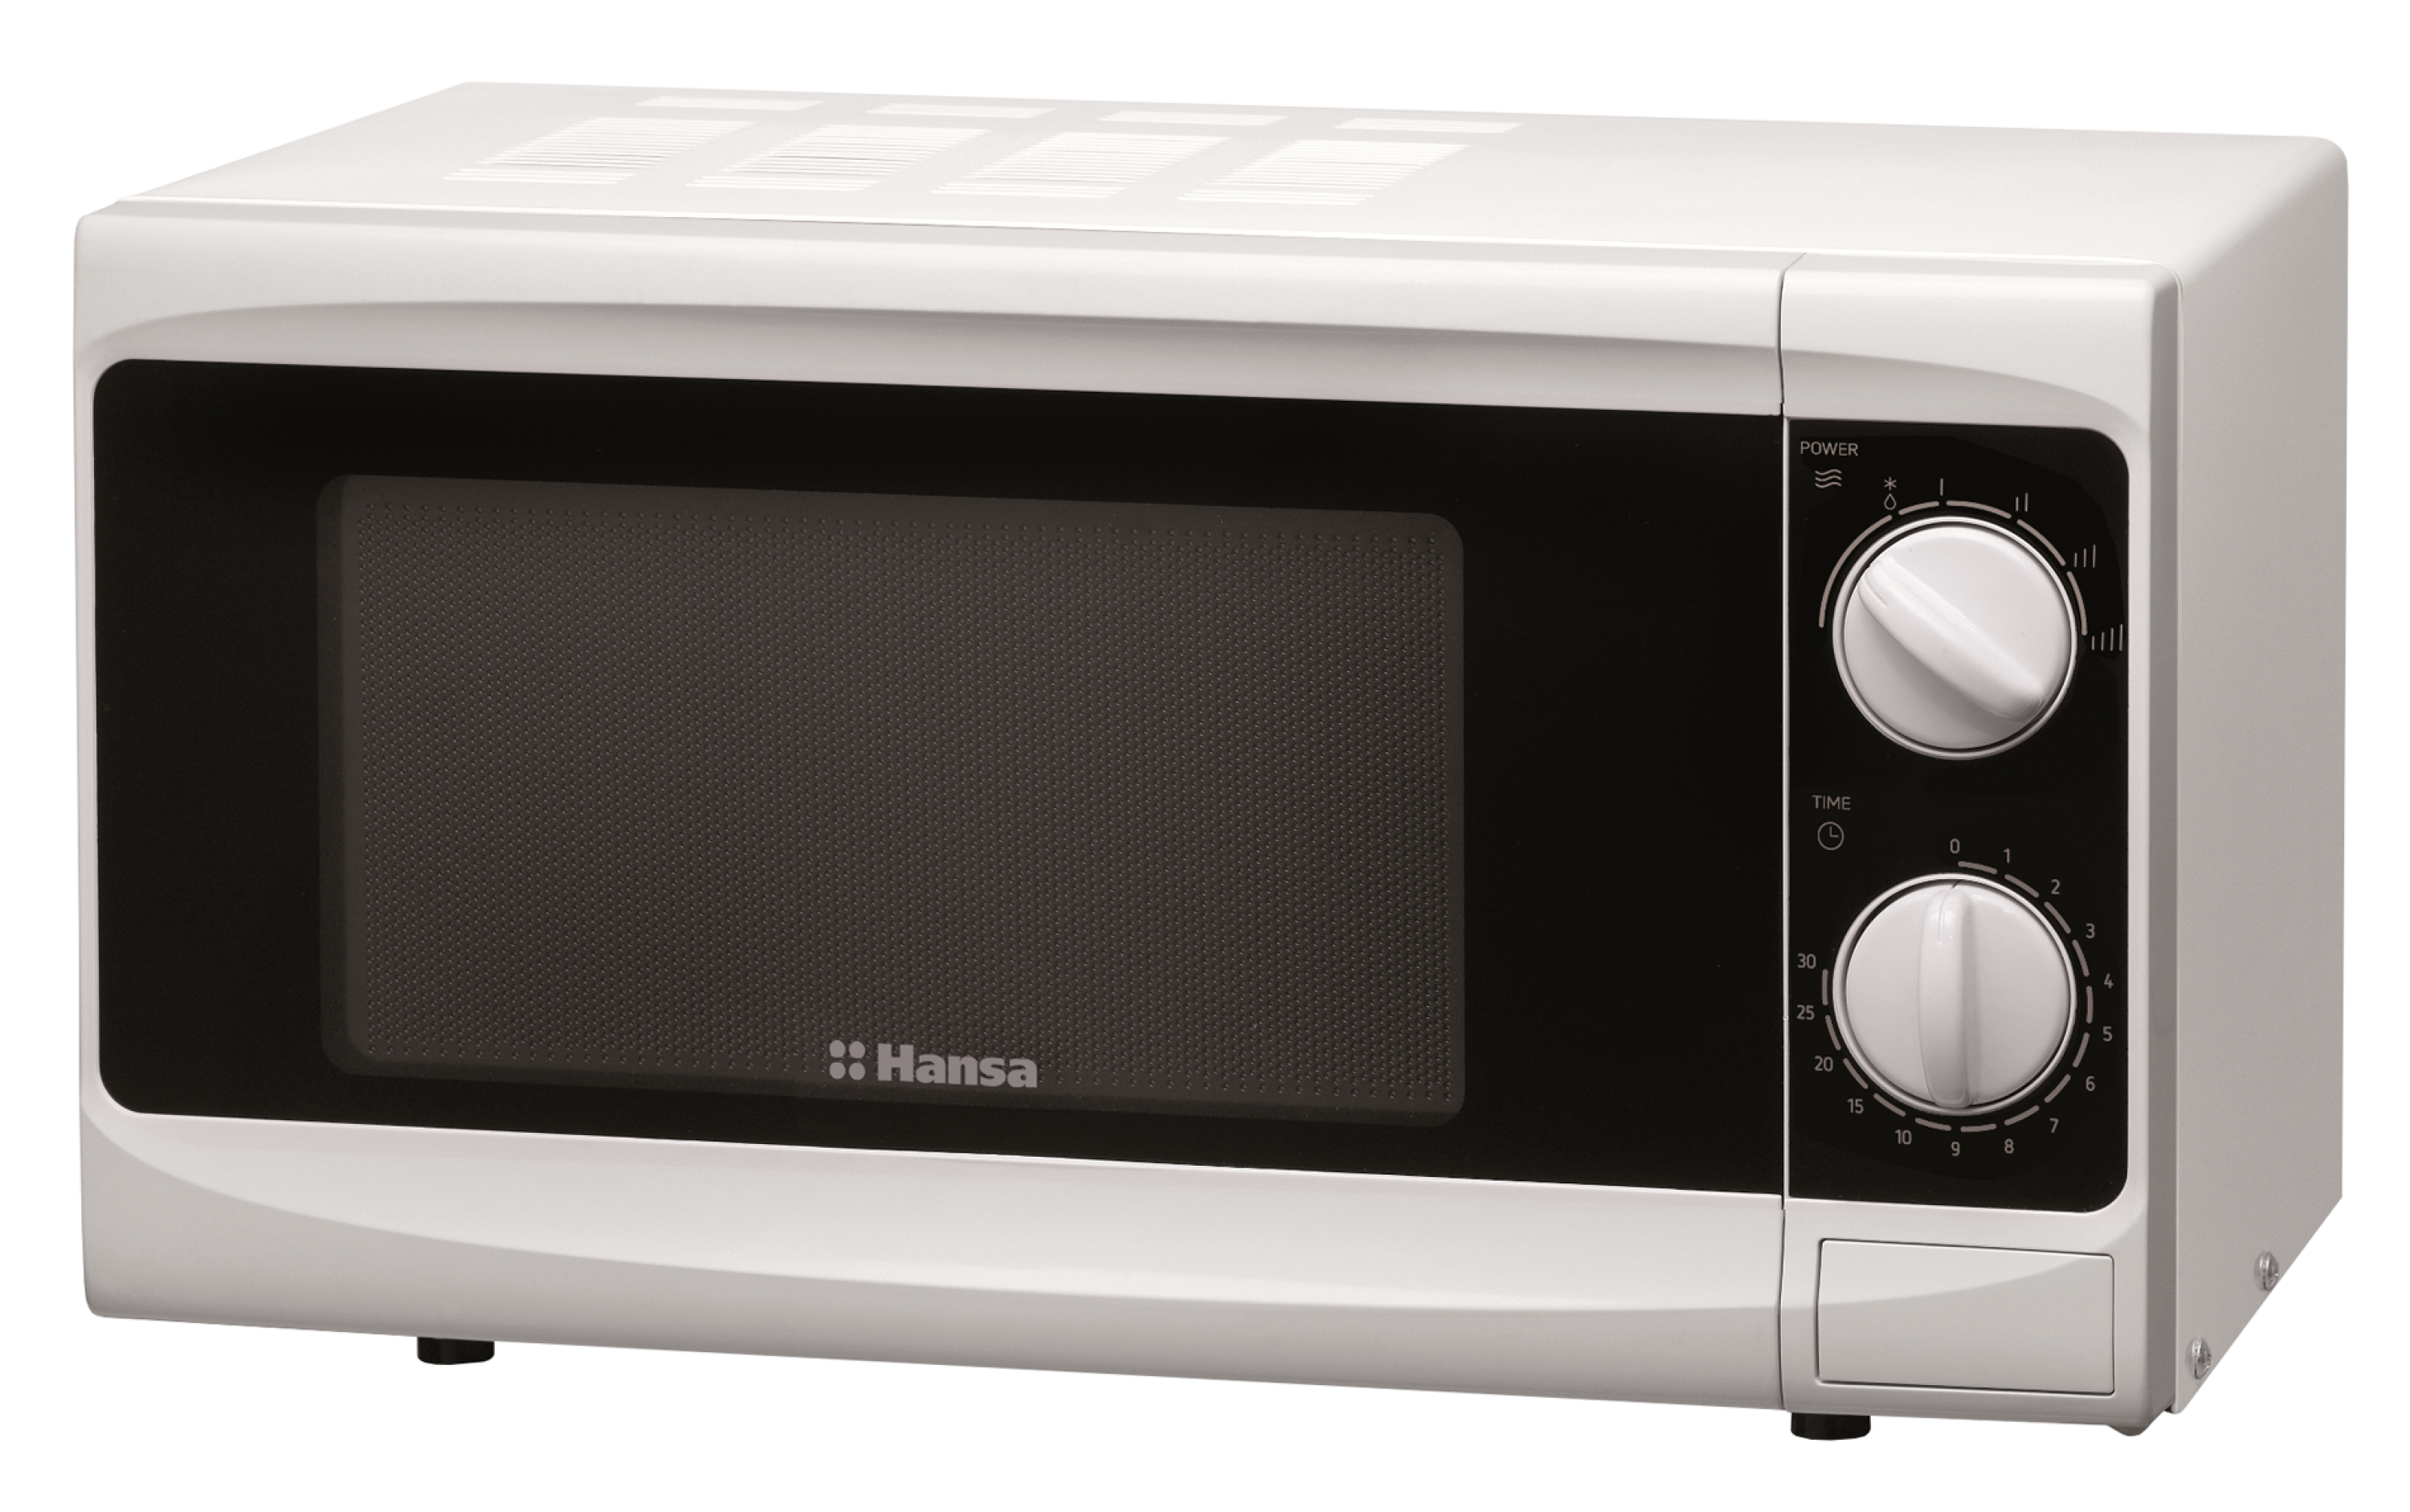 Freestanding microwave oven